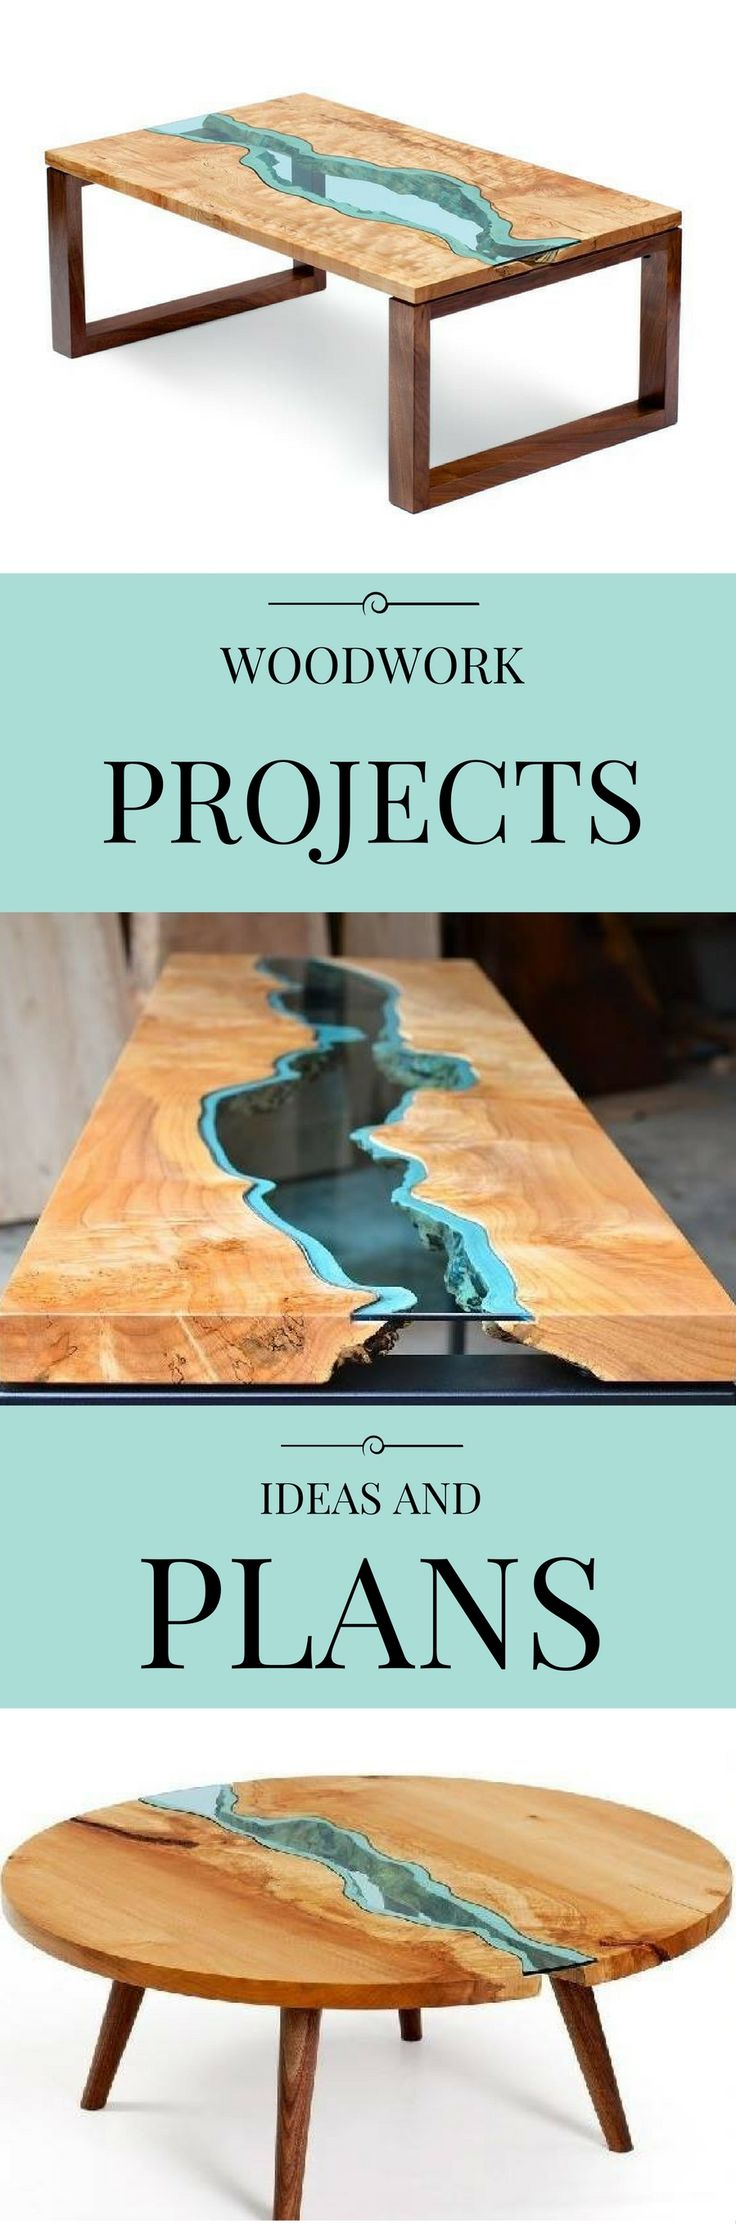 769 best Woodworking Projects images on Pinterest | Creative ...